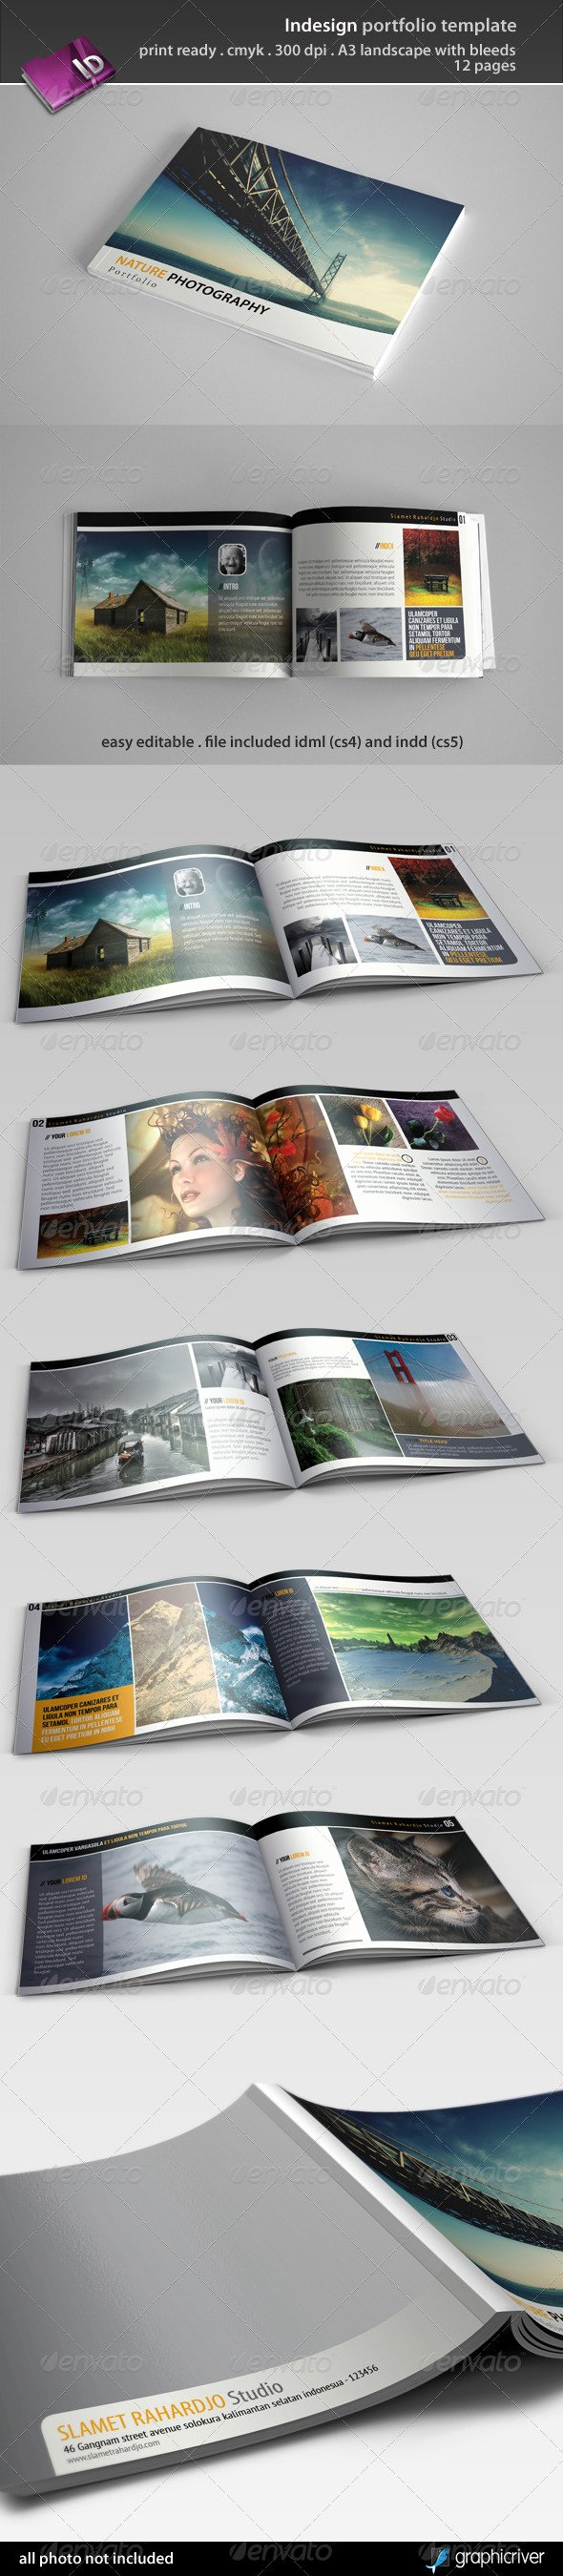 Indesign Portfolio Template Free Elegant Portfolio Template Indesign Free Download Fixride